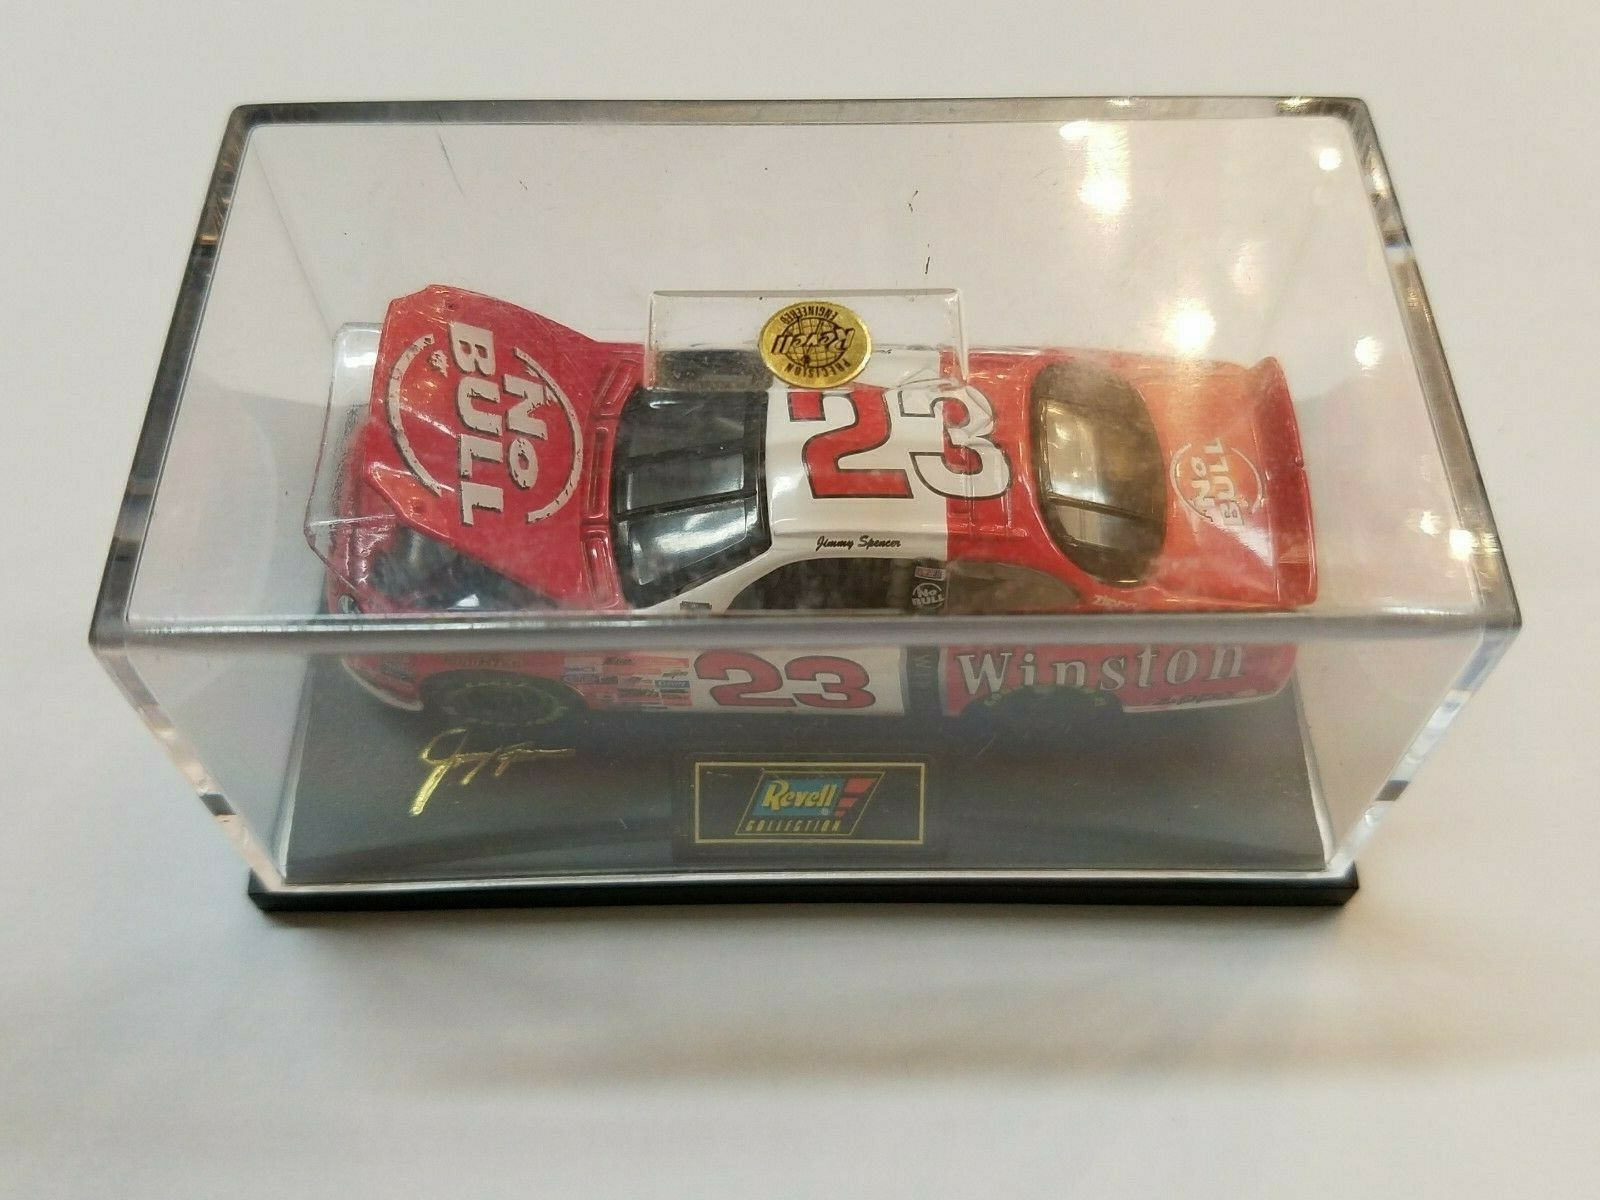 Collector Original Box 1998 Jimmy Spencer  23 Winston No Bull Nascar Diecast Car